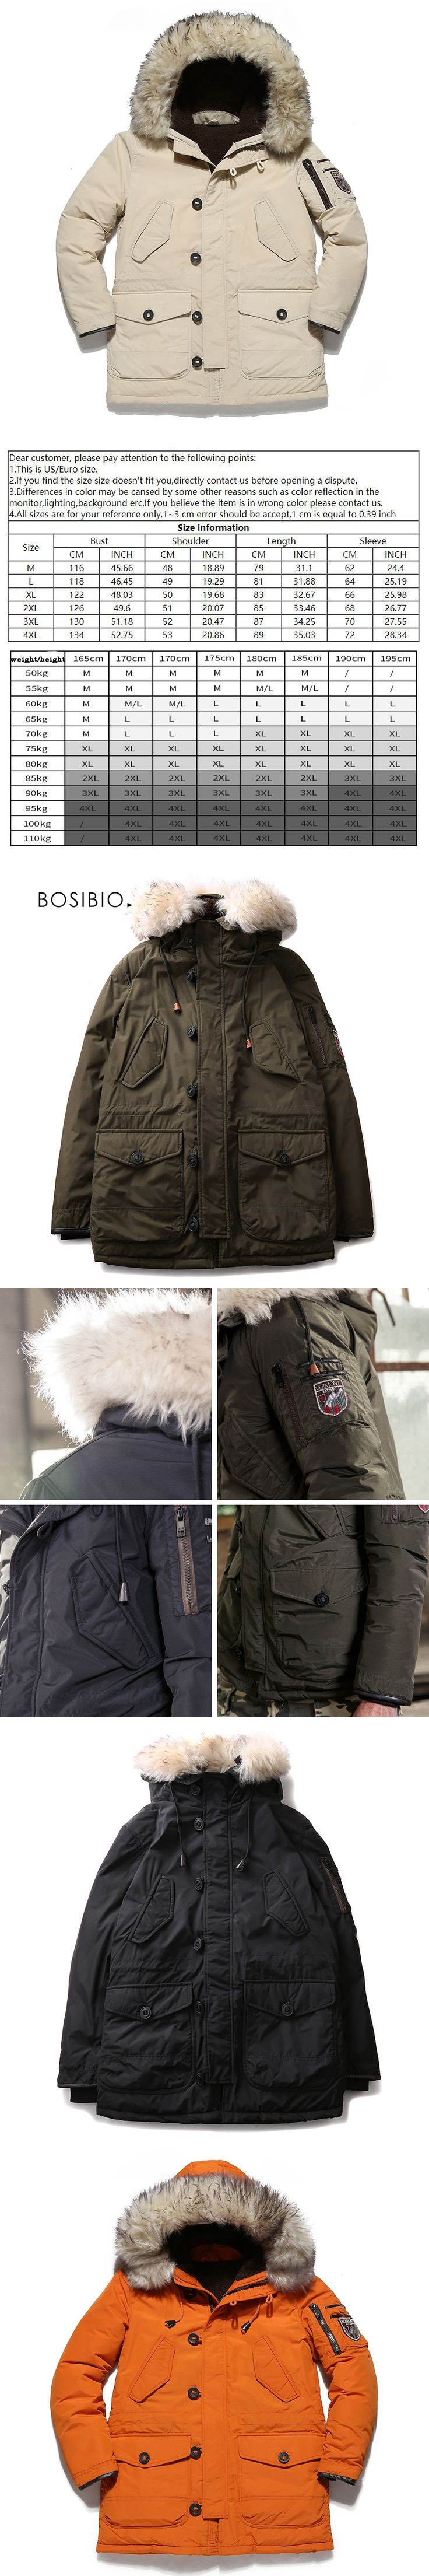 2017 winter white duck down jacket mens parka jackets fur hood Army green Casual Warm Thicken Men Coats Plus size 1778